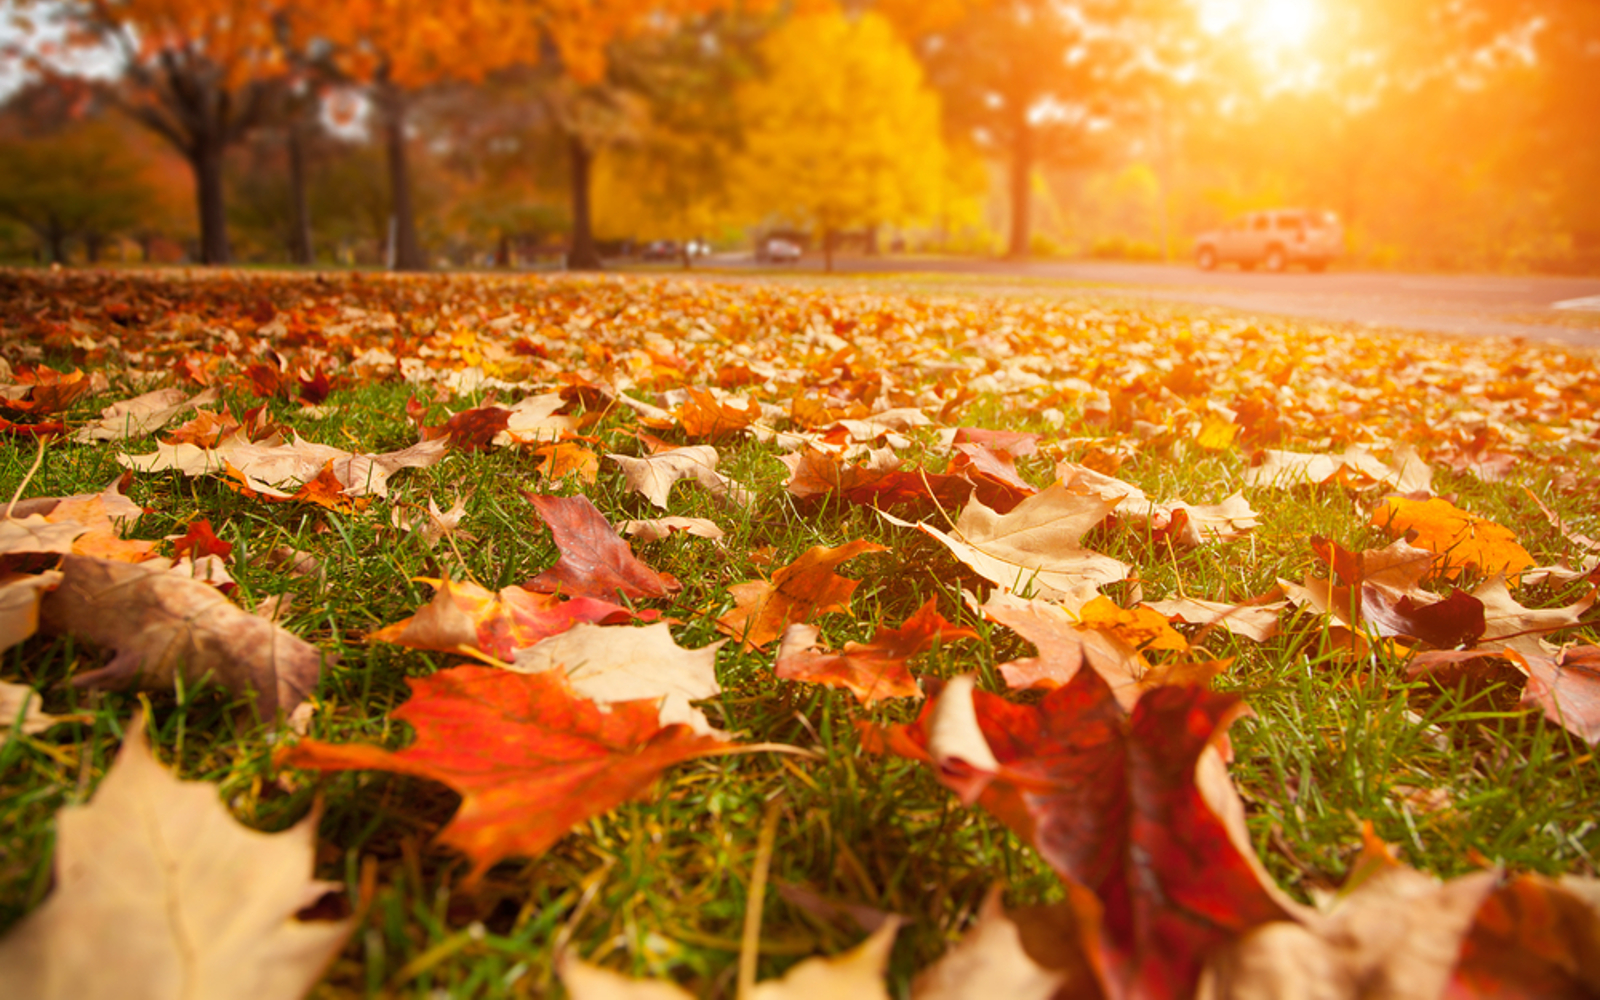 Autumn leaves on grass landscape